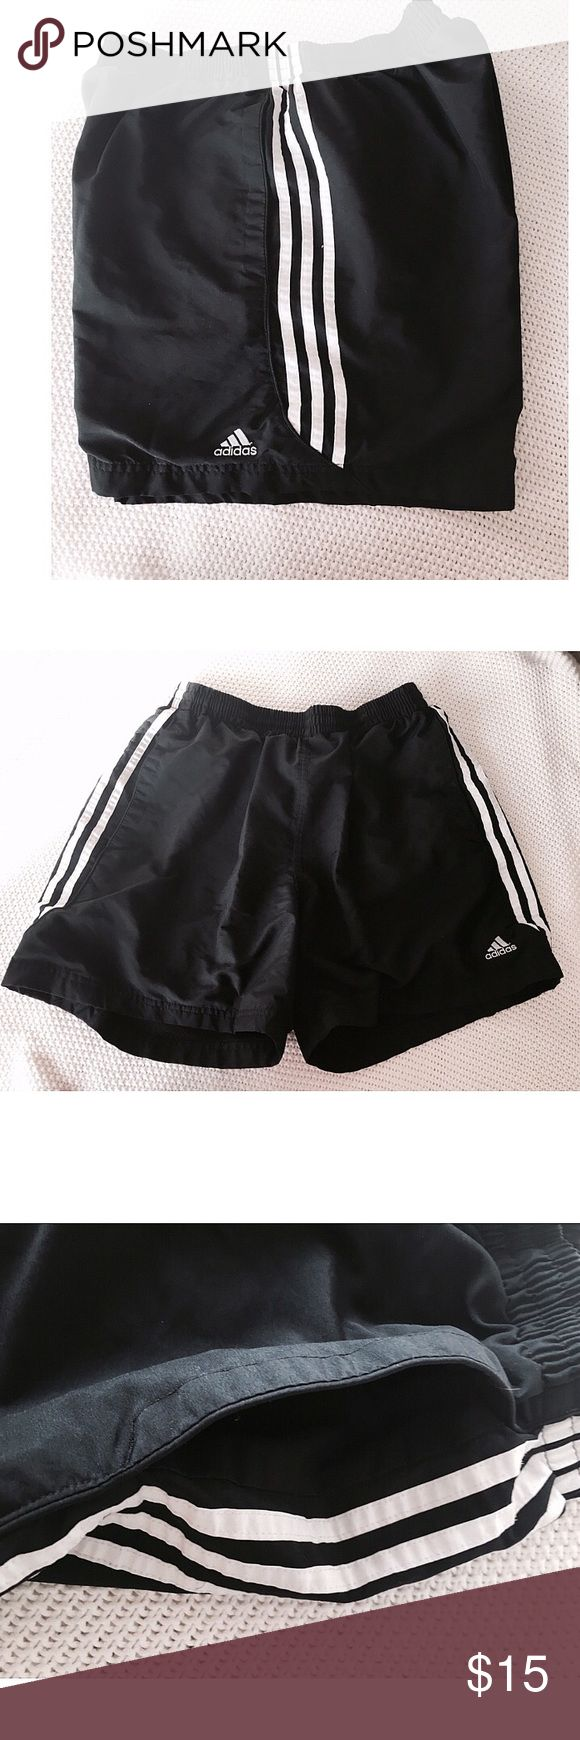 adidas athletic shorts classic black womens athletic adidas shorts perfect for all activities or